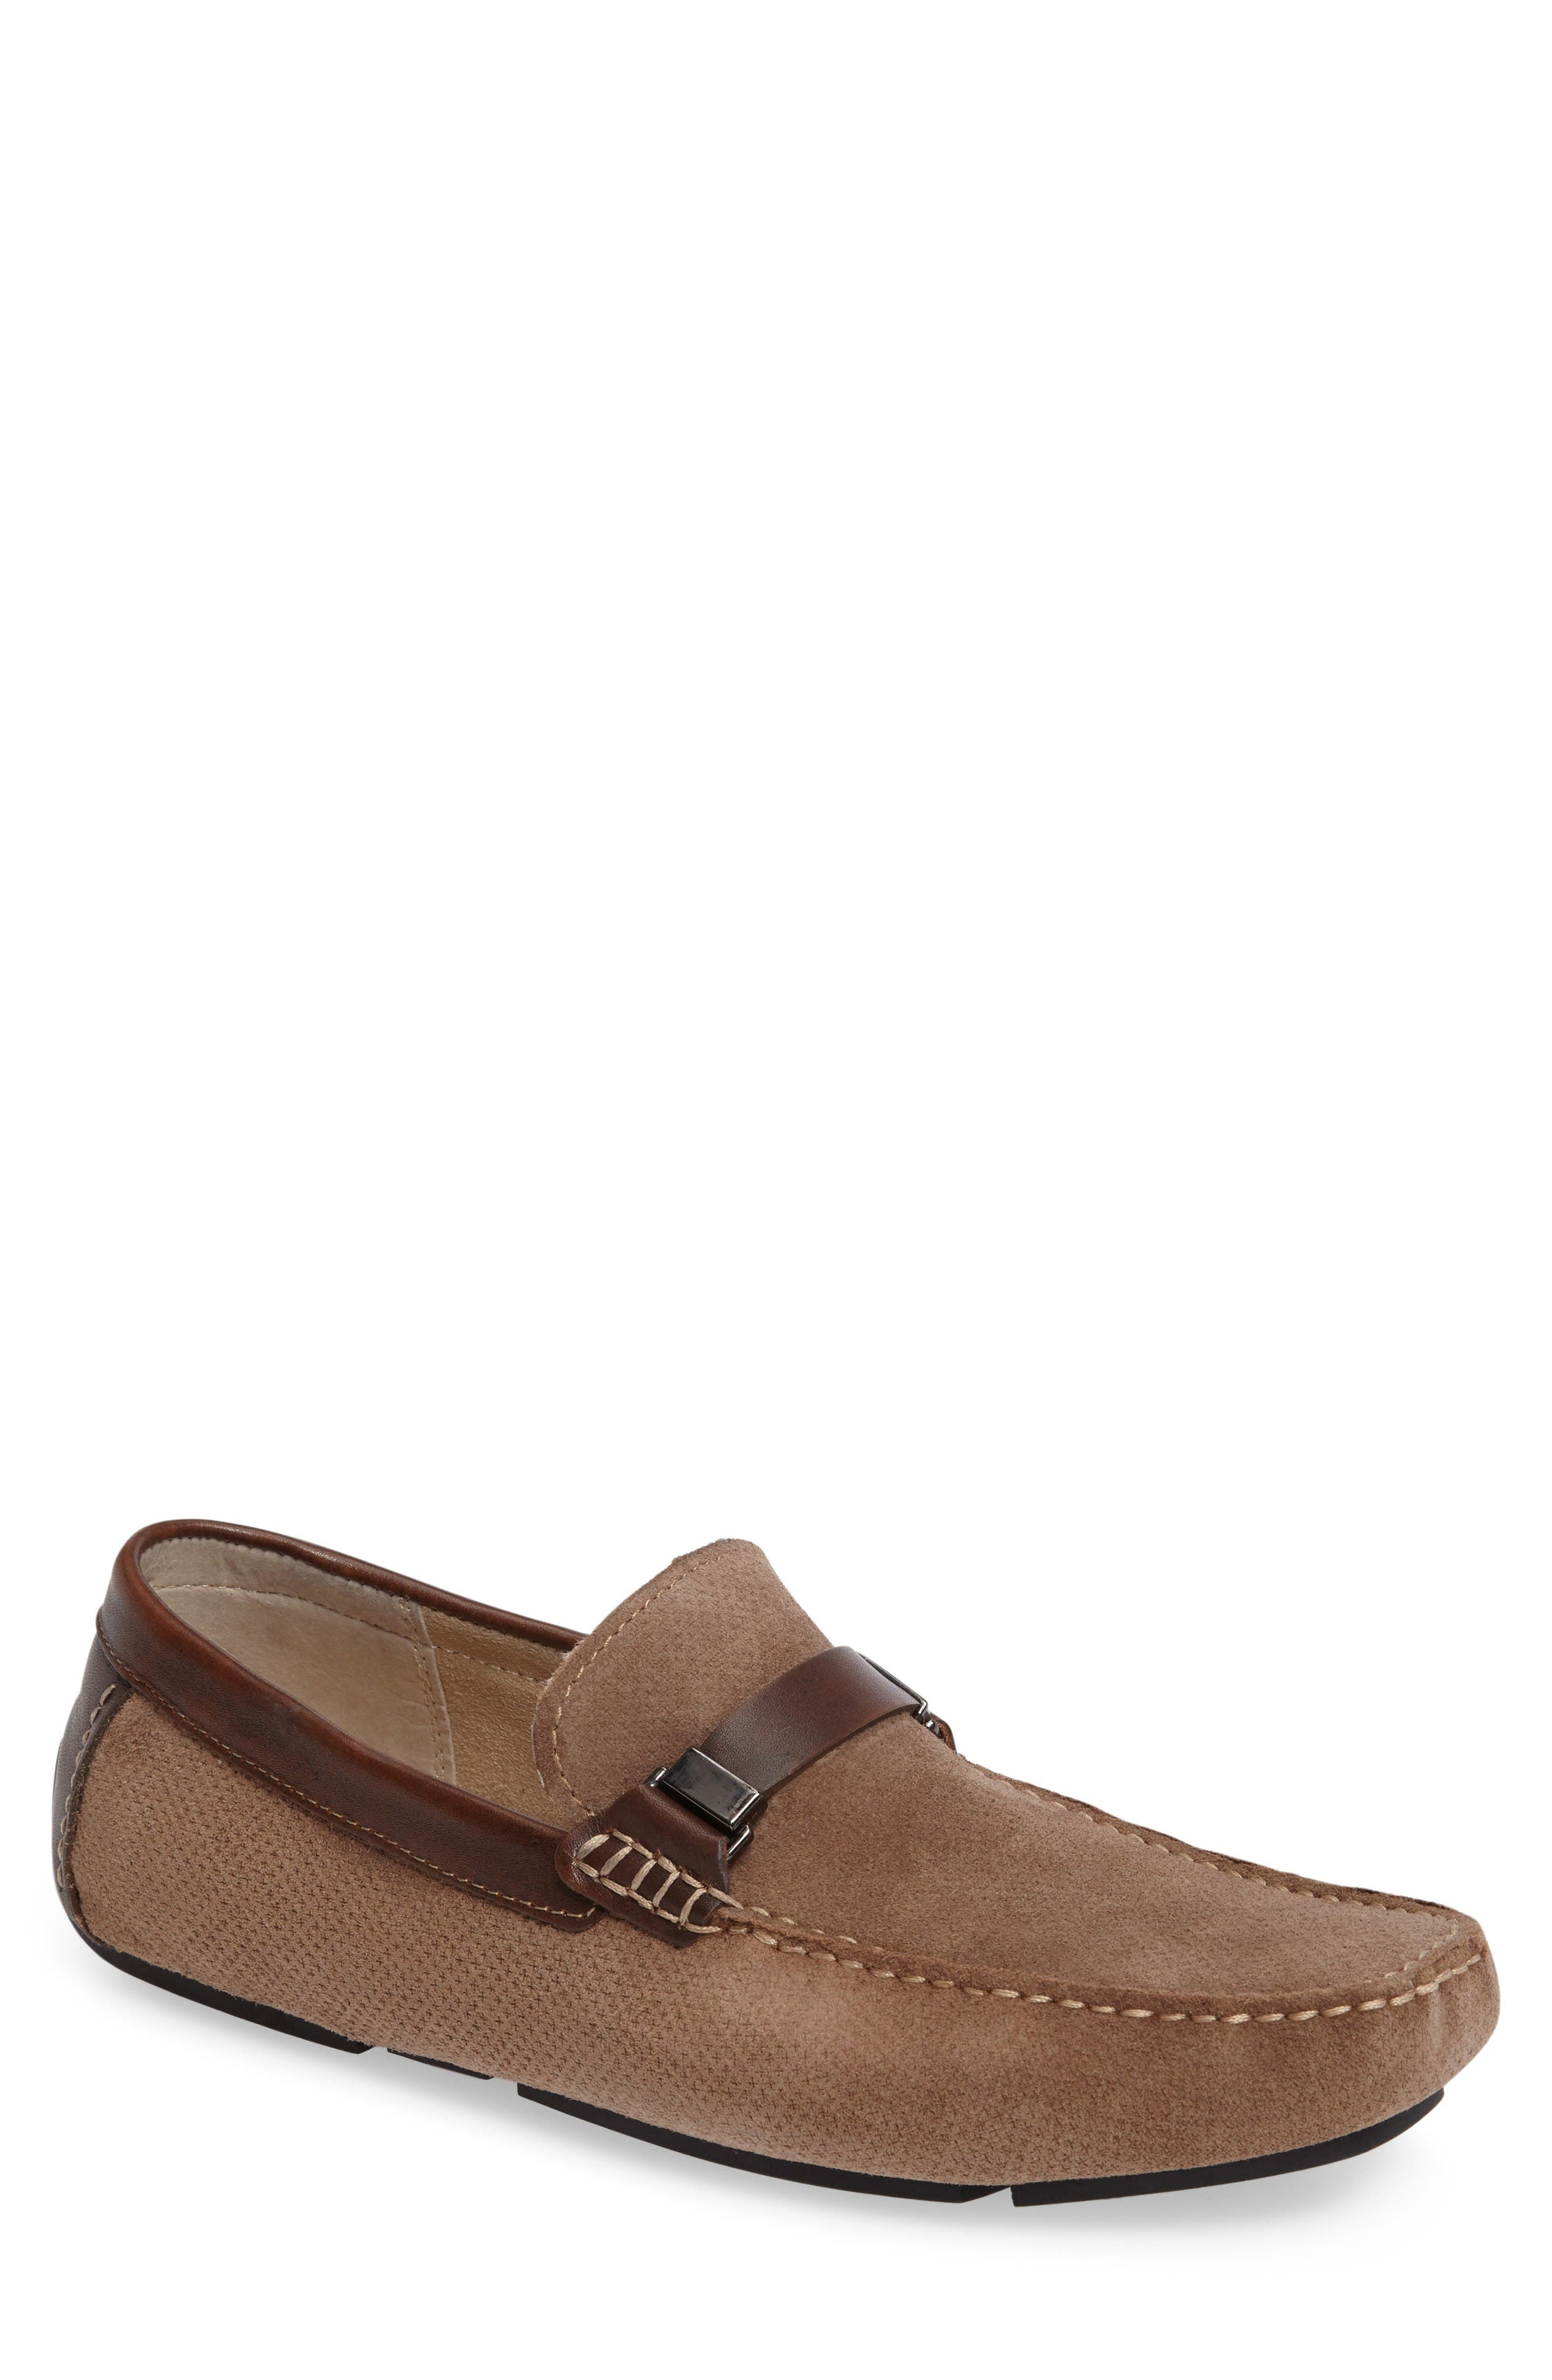 Reaction Kenneth Cole Herd the Word Driving Loafer (Men)